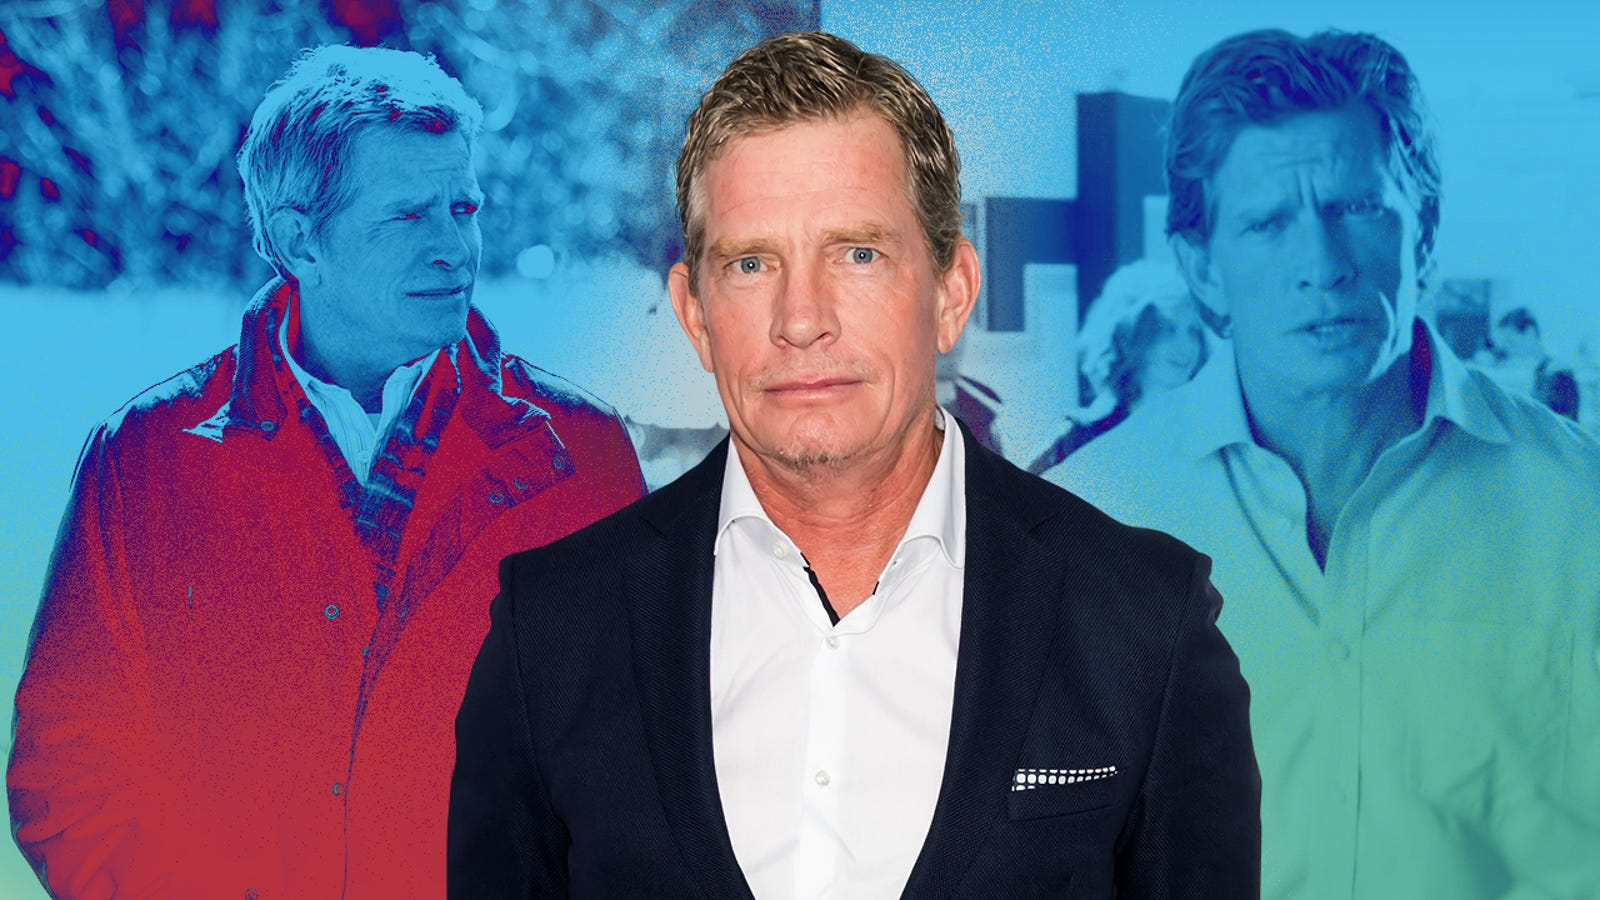 Thomas Haden Church has never seen Hellboy or Idiocracy, and he's in them